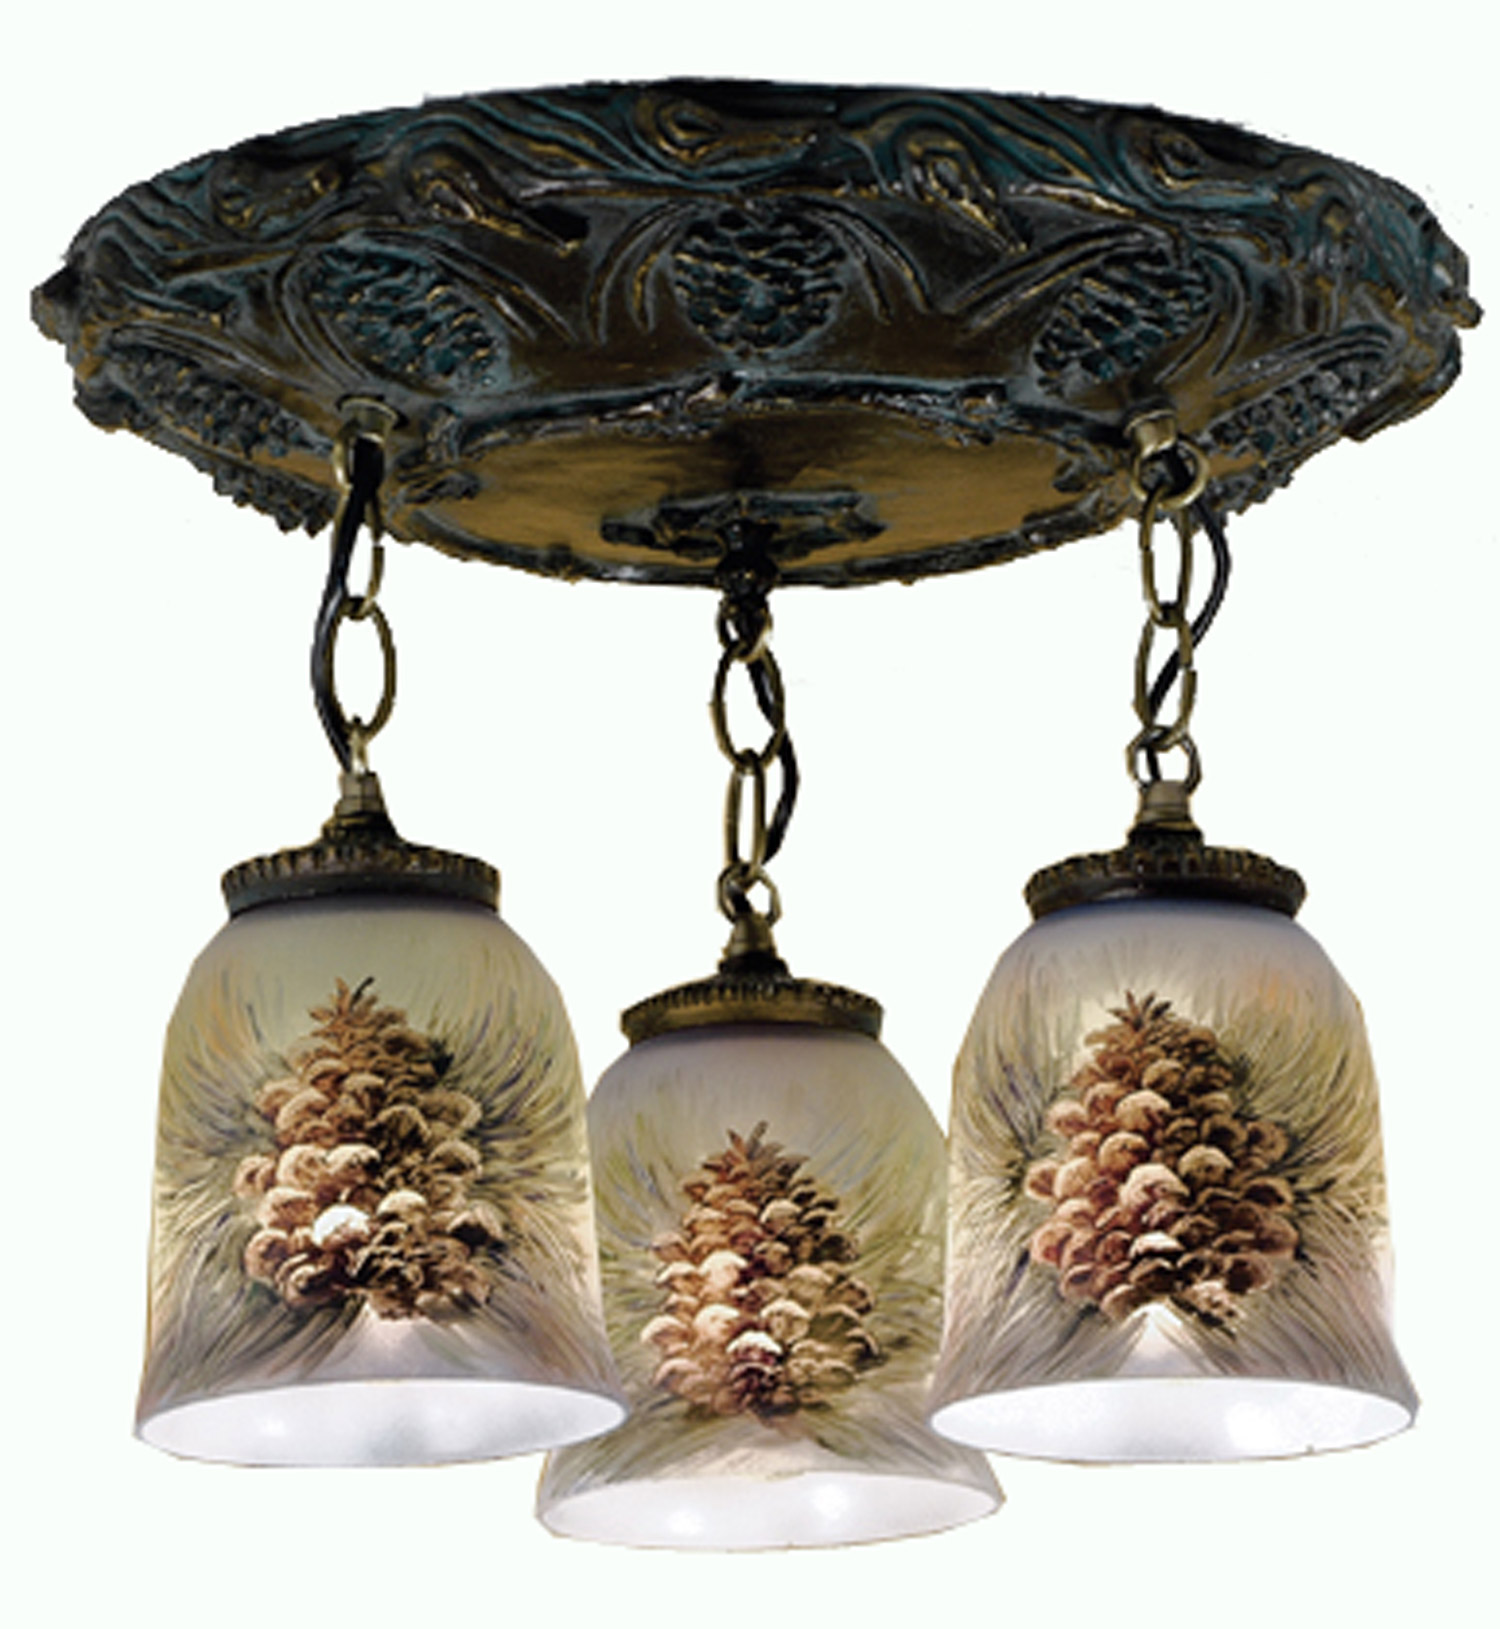 49537 northwoods pinecone pinecone three pendant semi flush mount meyda 49537 northwoods pinecone pinecone three pendant semi flush mount ceiling light arubaitofo Choice Image